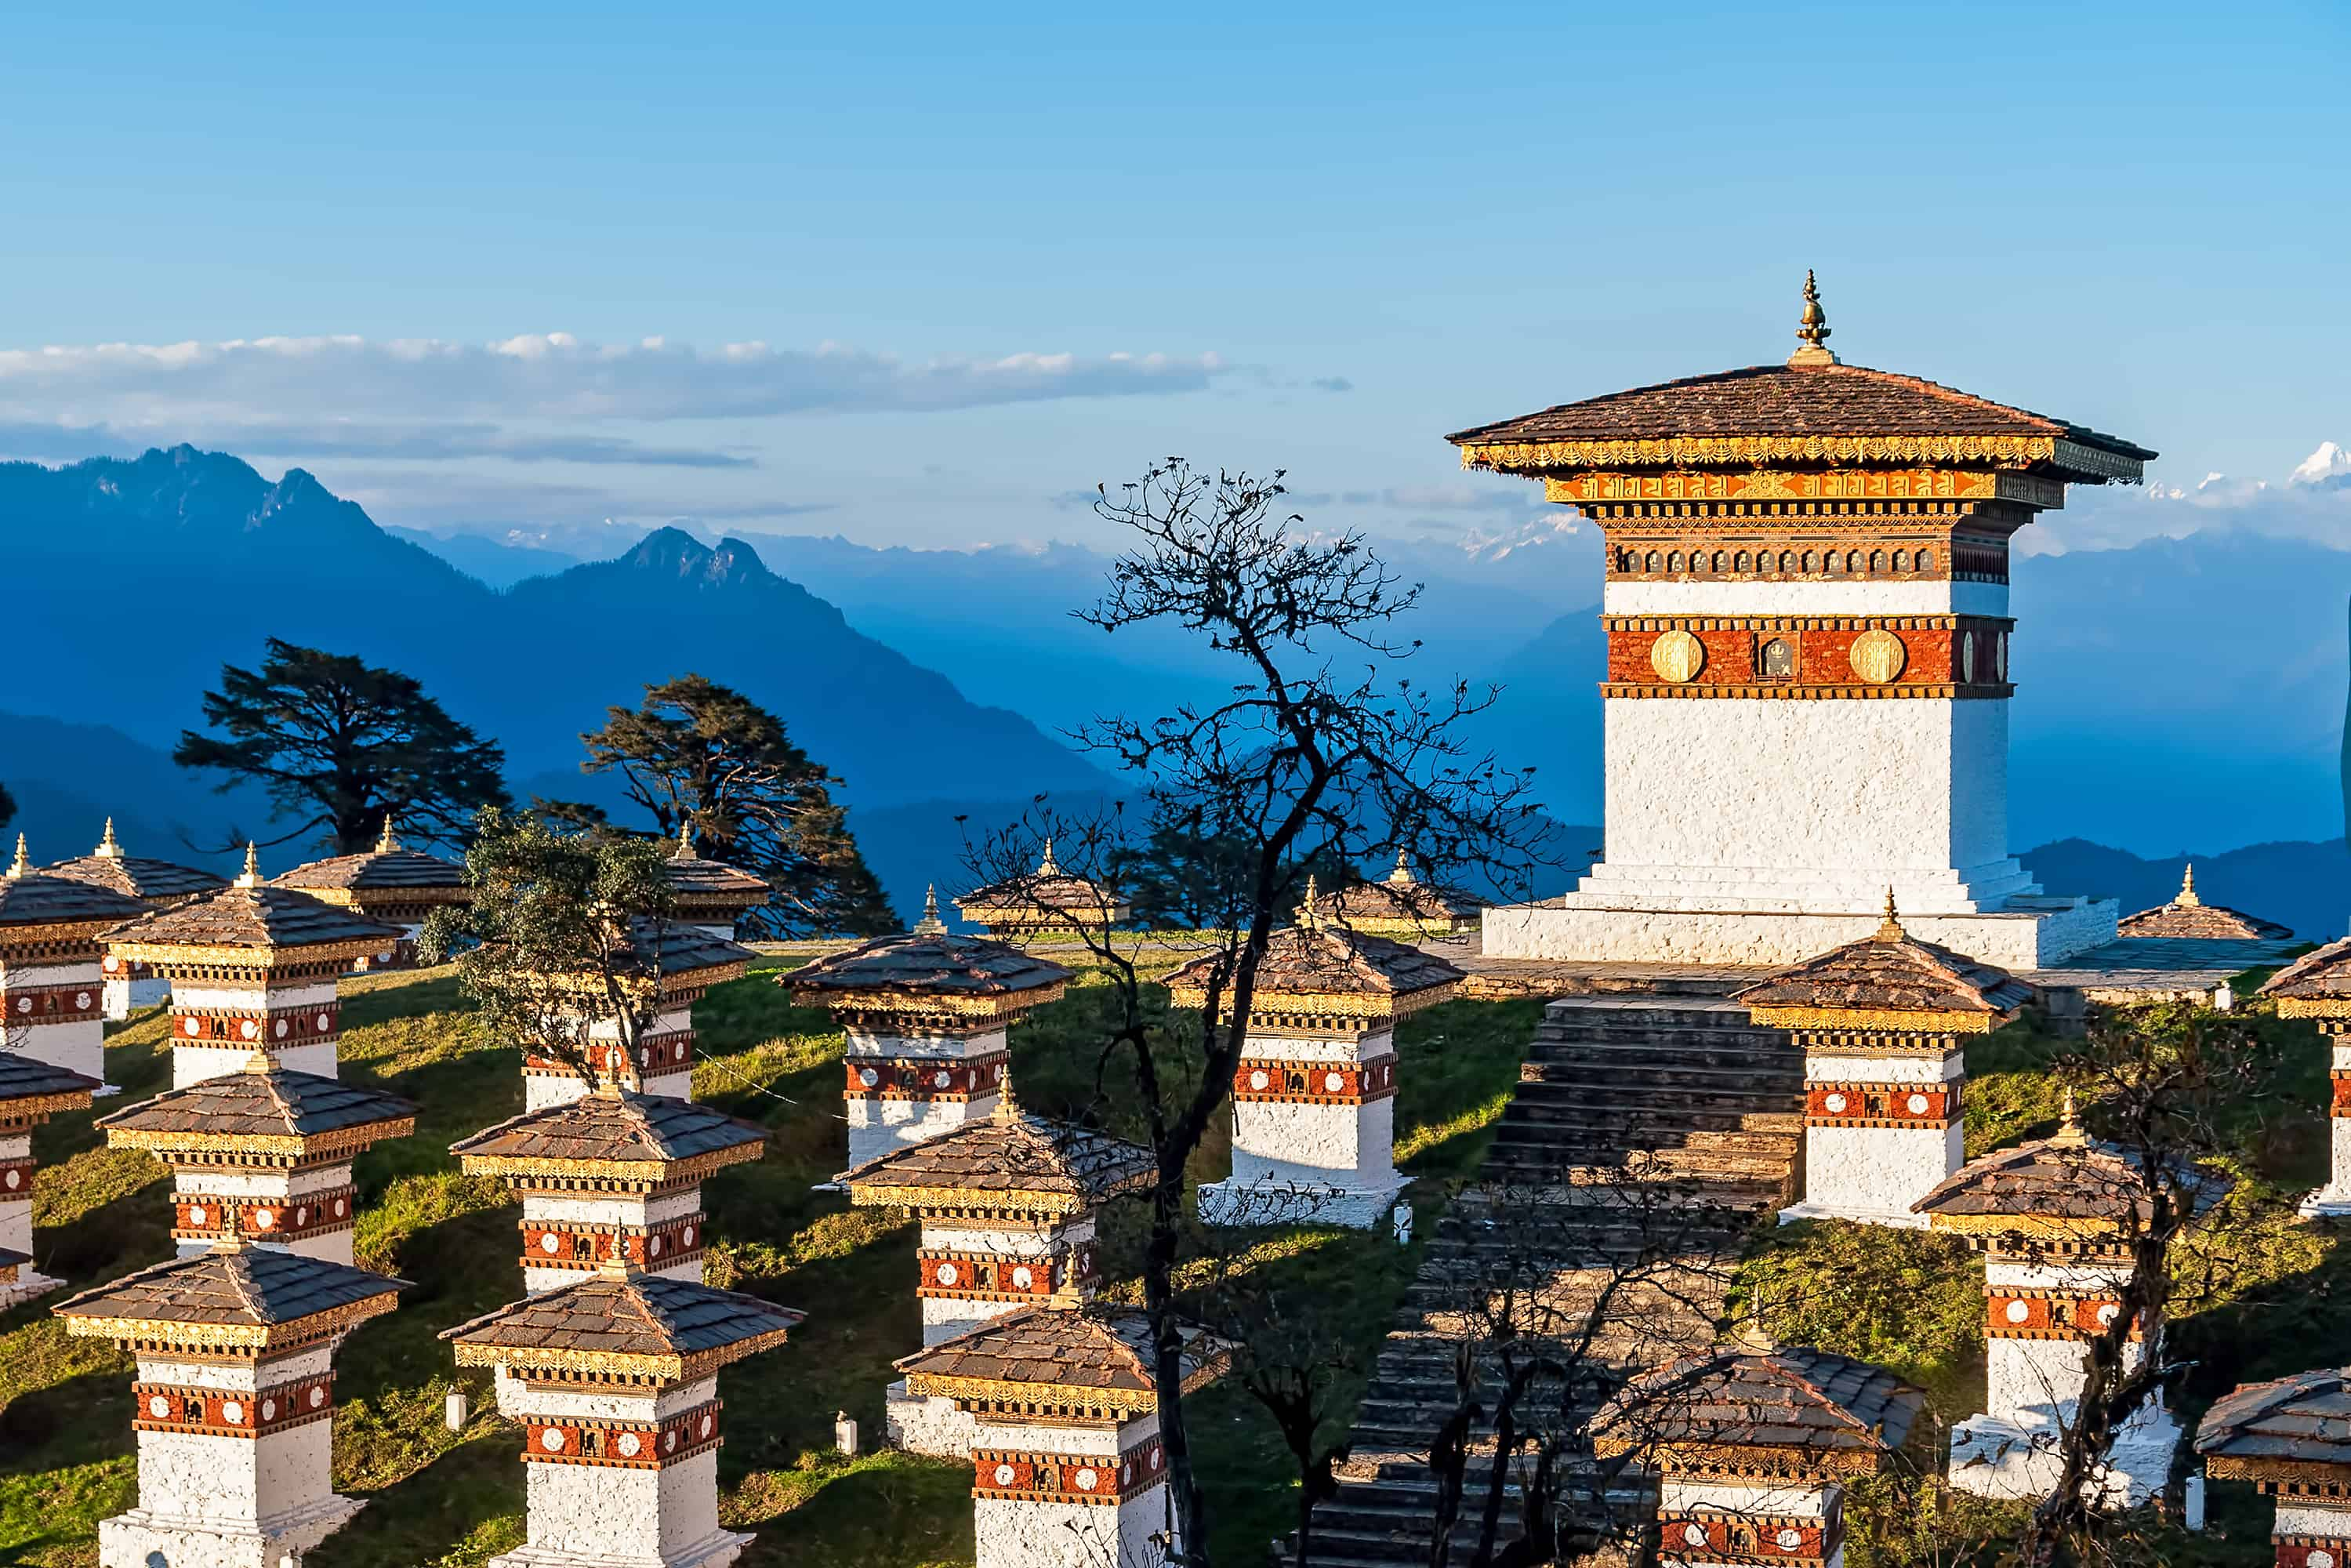 Sunset Dochula Pass Memorial Chortens in Bhutan